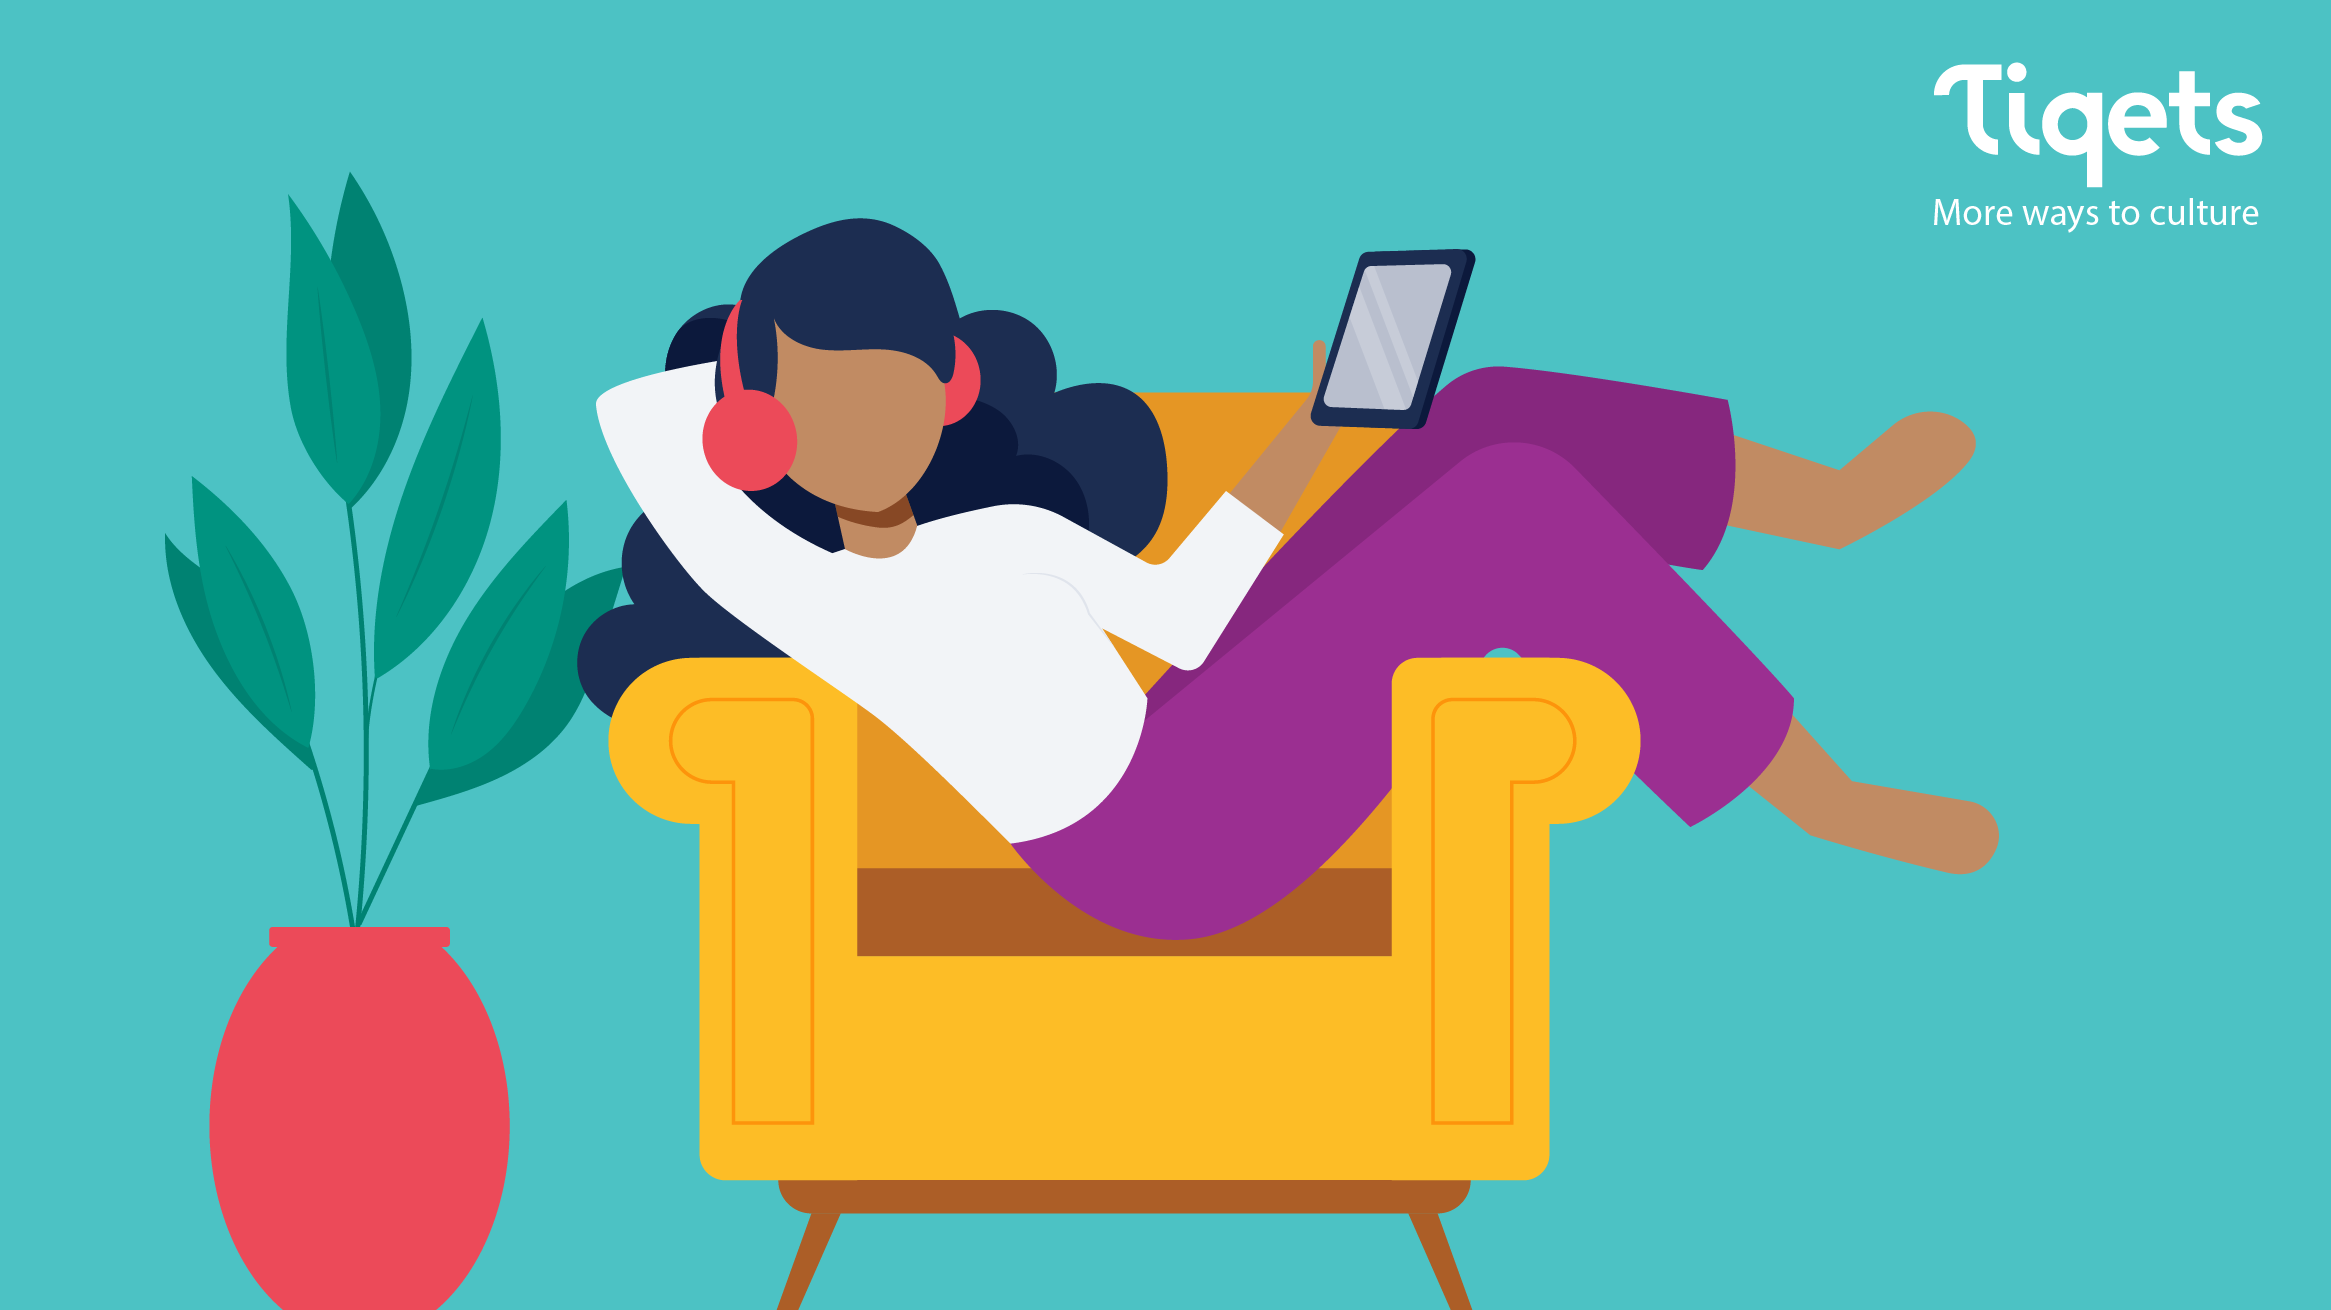 An illustration of a person lounging in an armchair looking at a device and wearing headphone